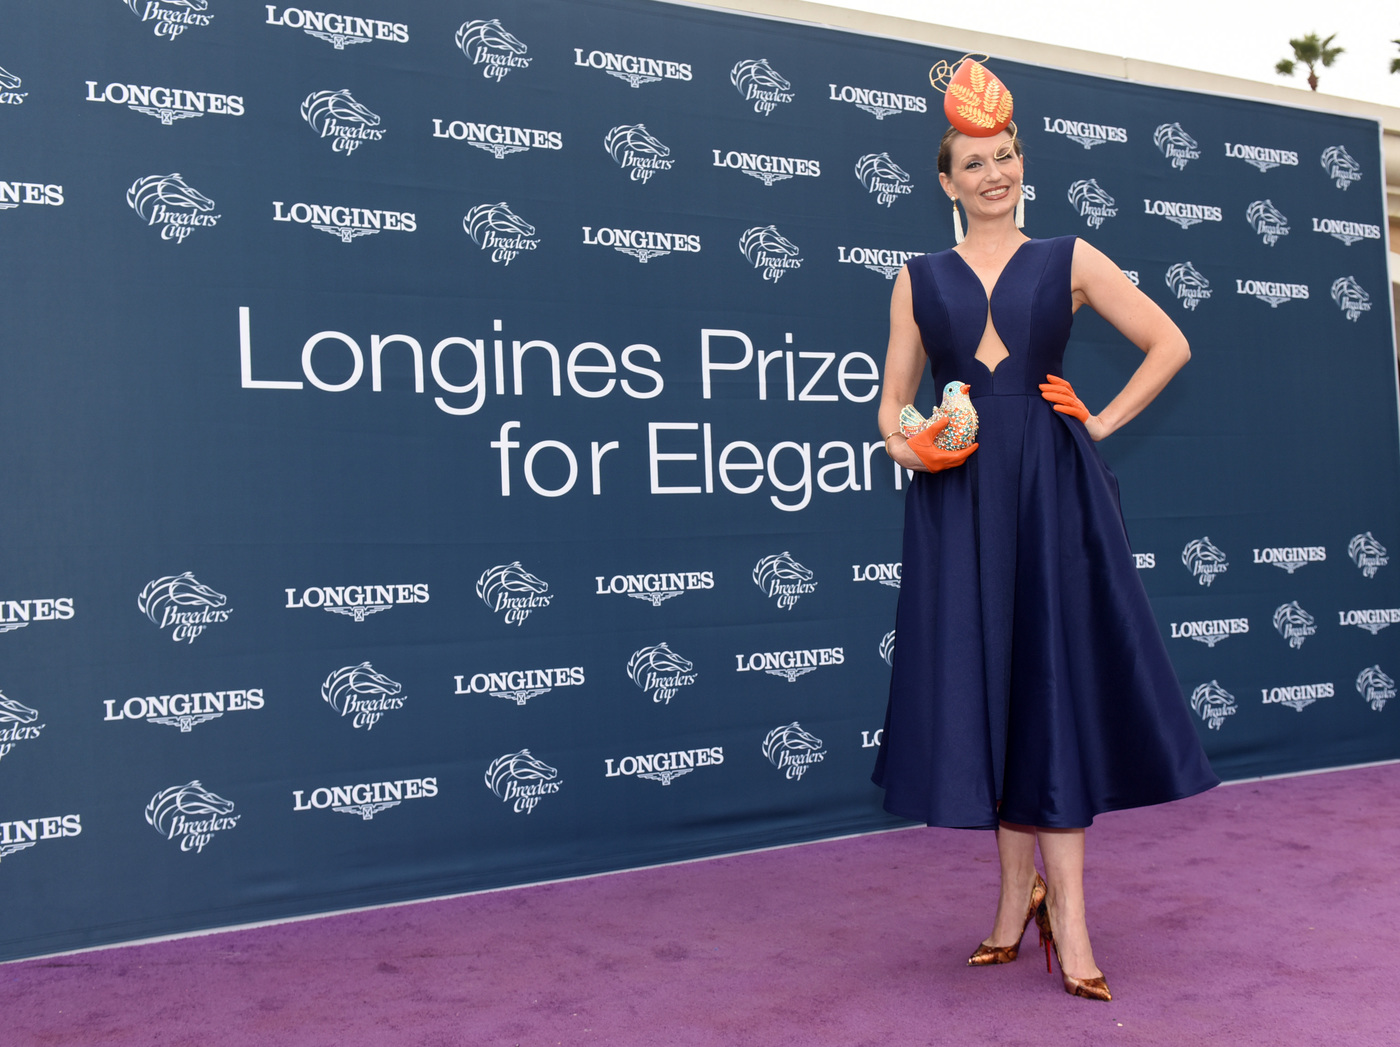 Longines Flat Racing Event: Swiss Watch Brand Longines Times 2017 Breeders' Cup World Championships at Del Mar 4